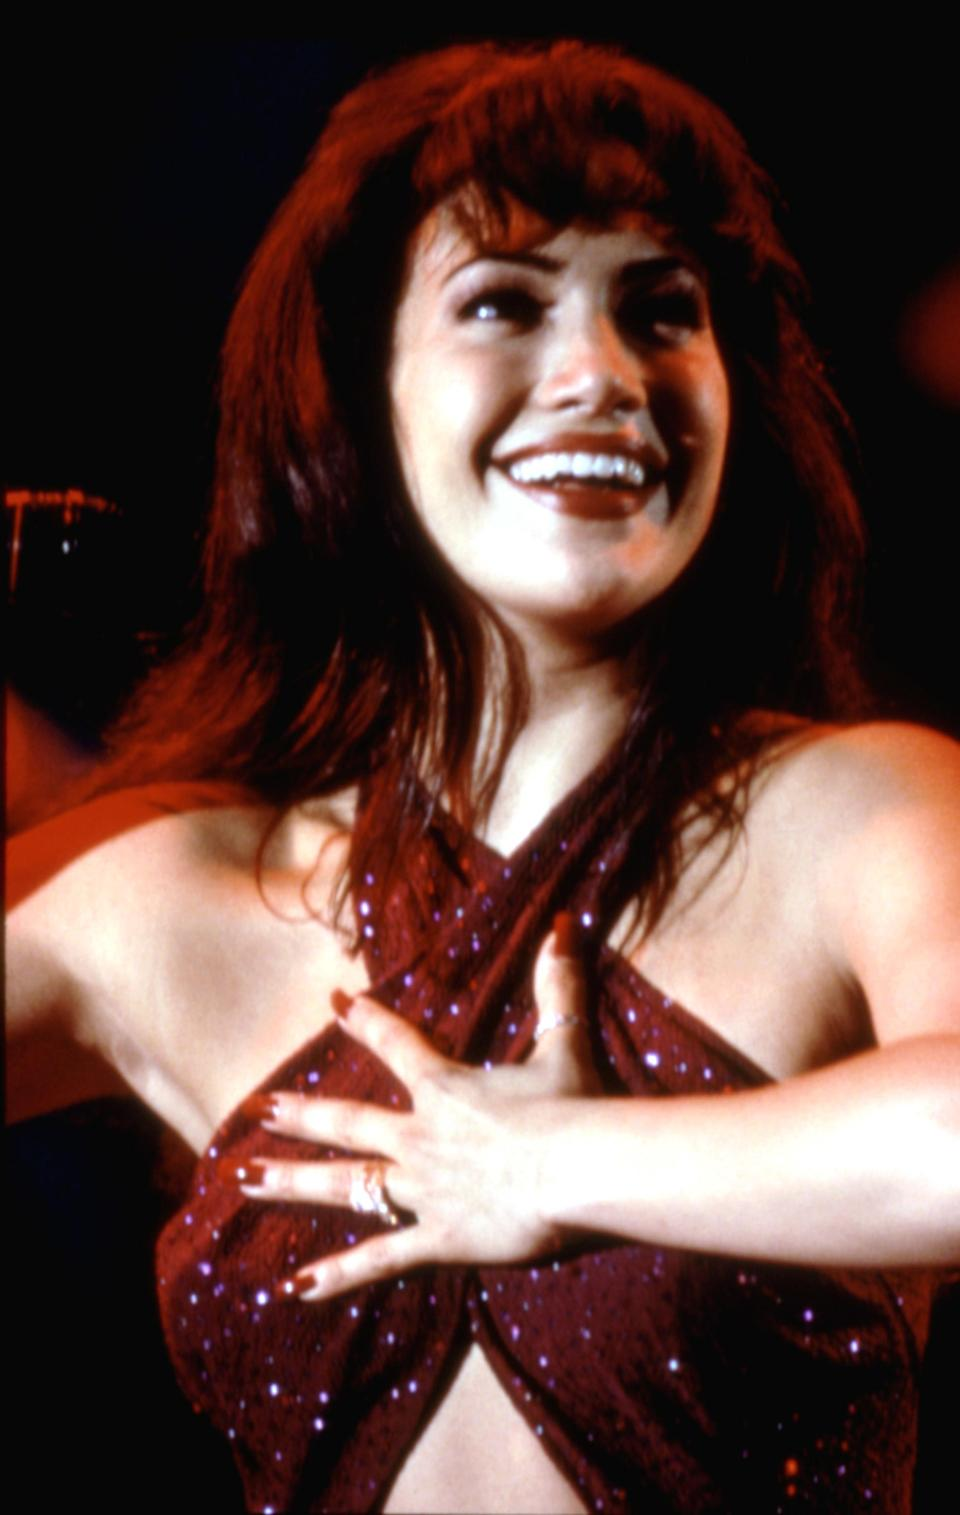 Selena performing in a jumpsuit in the film